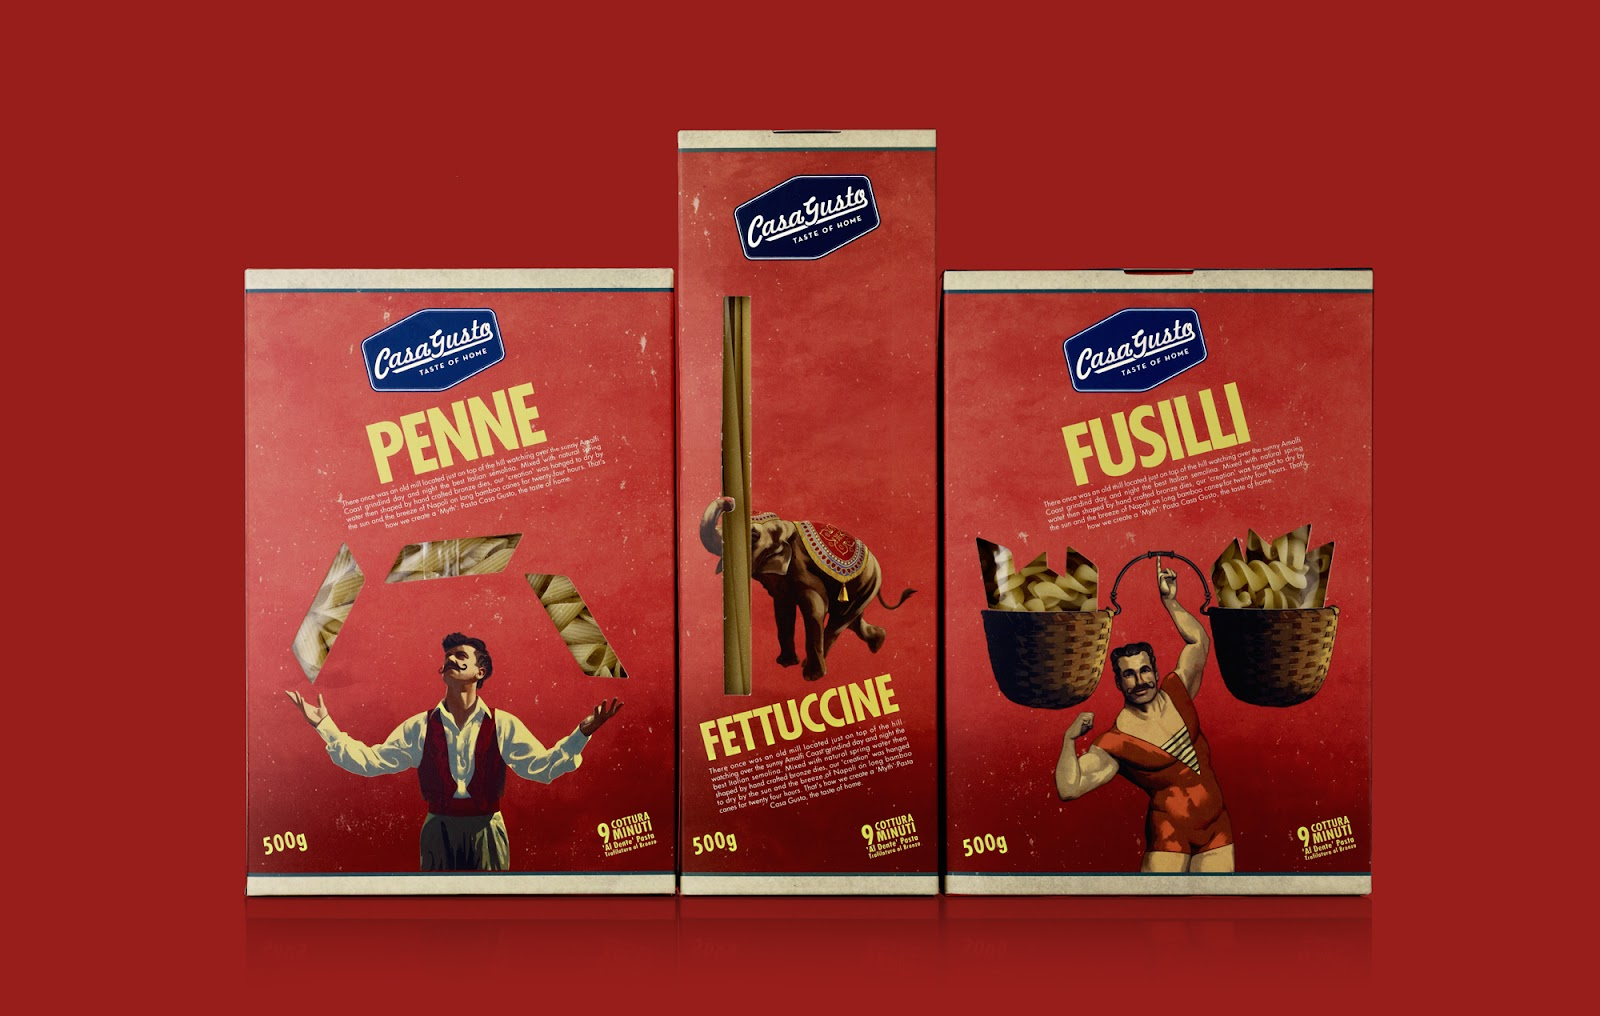 The Casa Gusto brand design and food packaging is centred around the story of their father who followed the circus around Italy